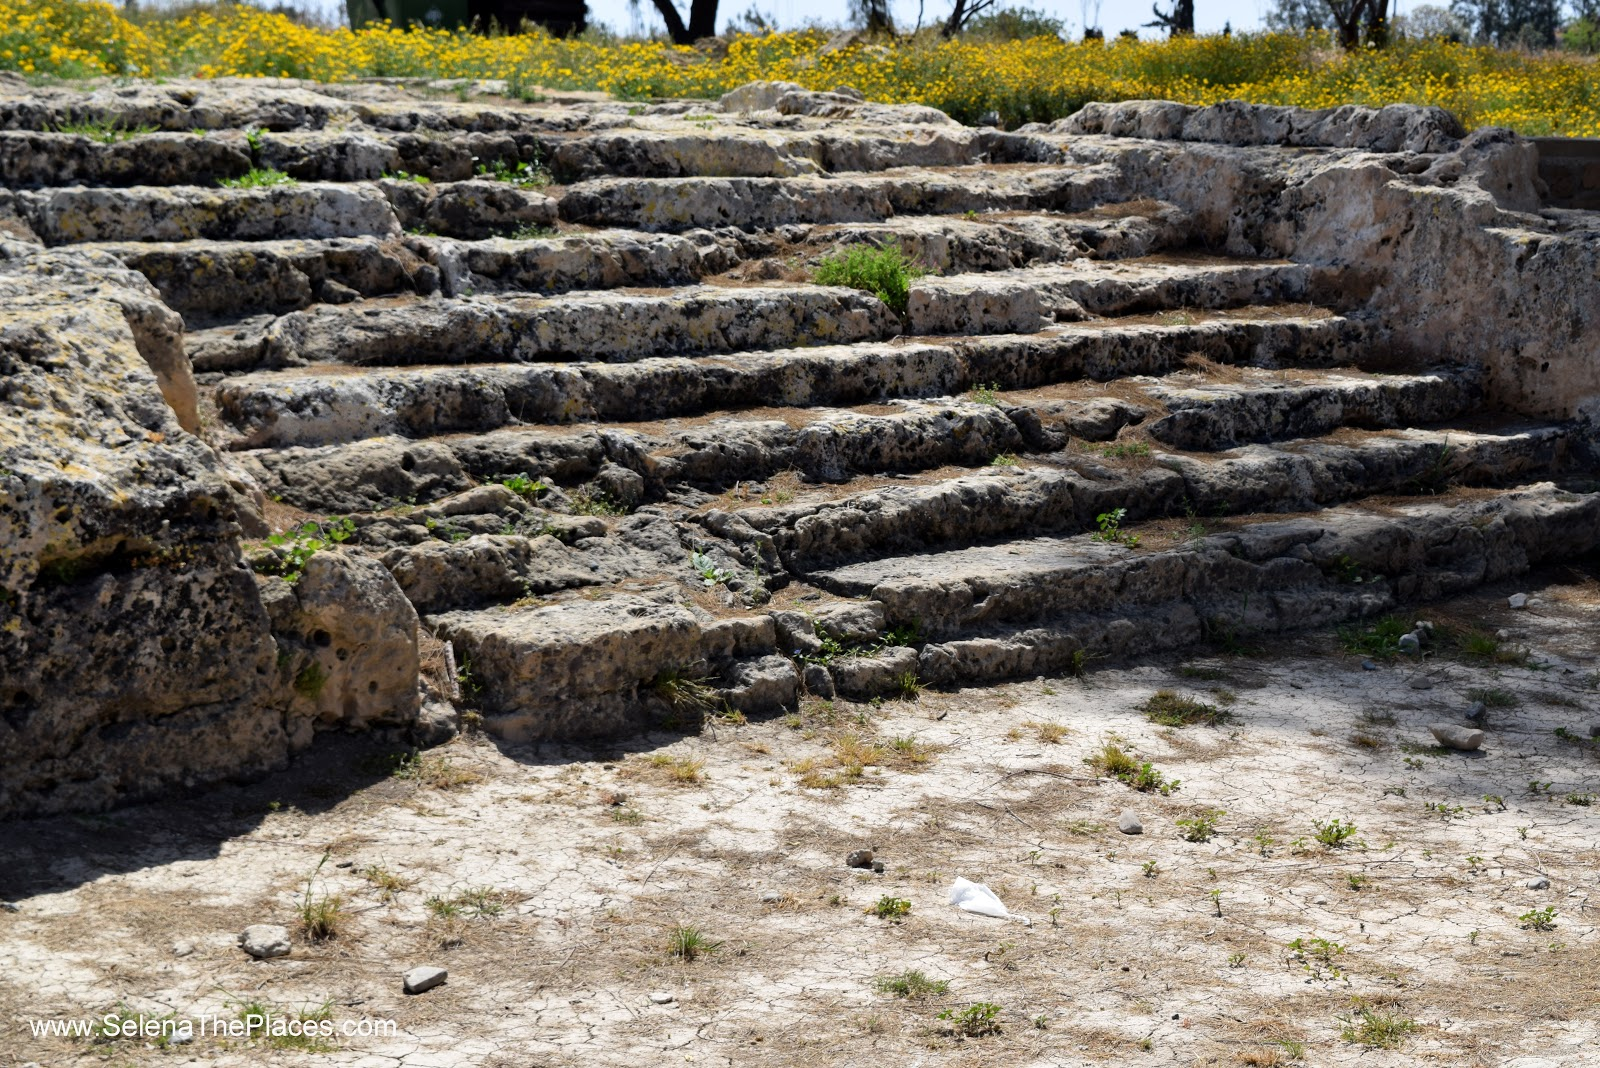 Paphos Archeoligical Site